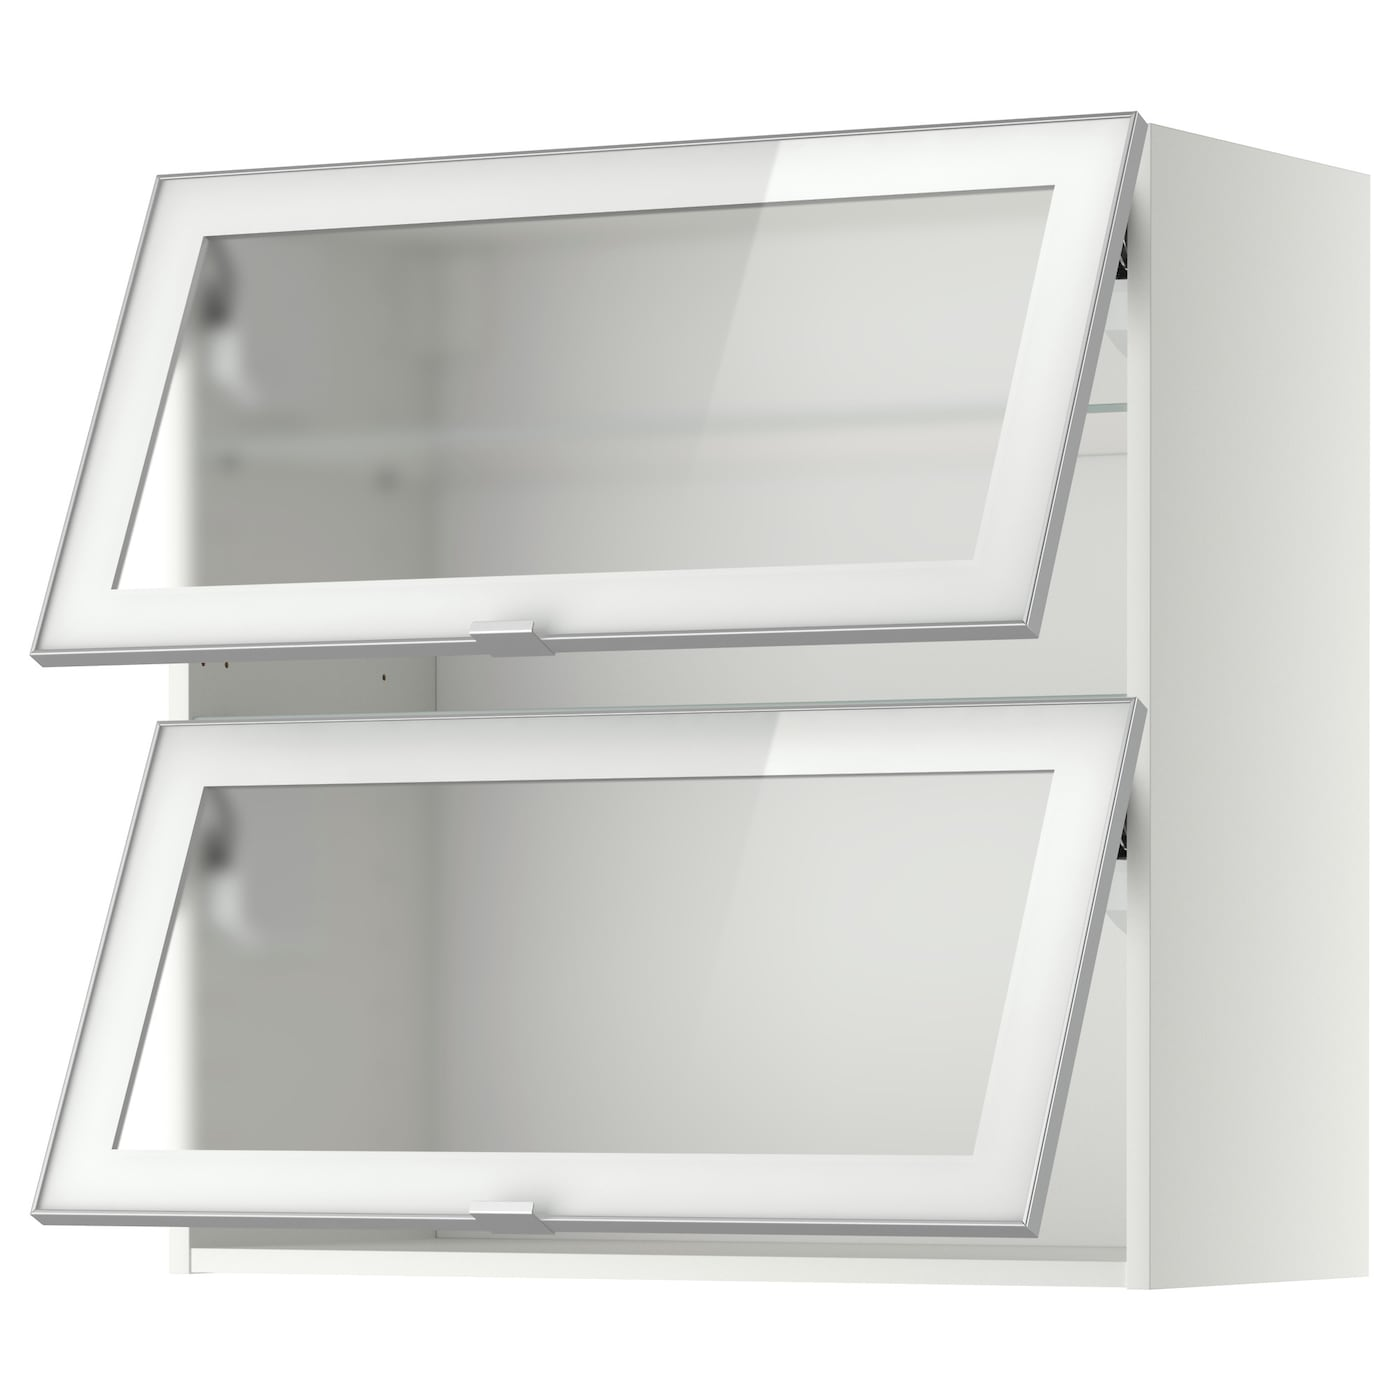 Metod Wall Cab Horizontal W 2 Glass Doors Whitejutis Frosted Glass